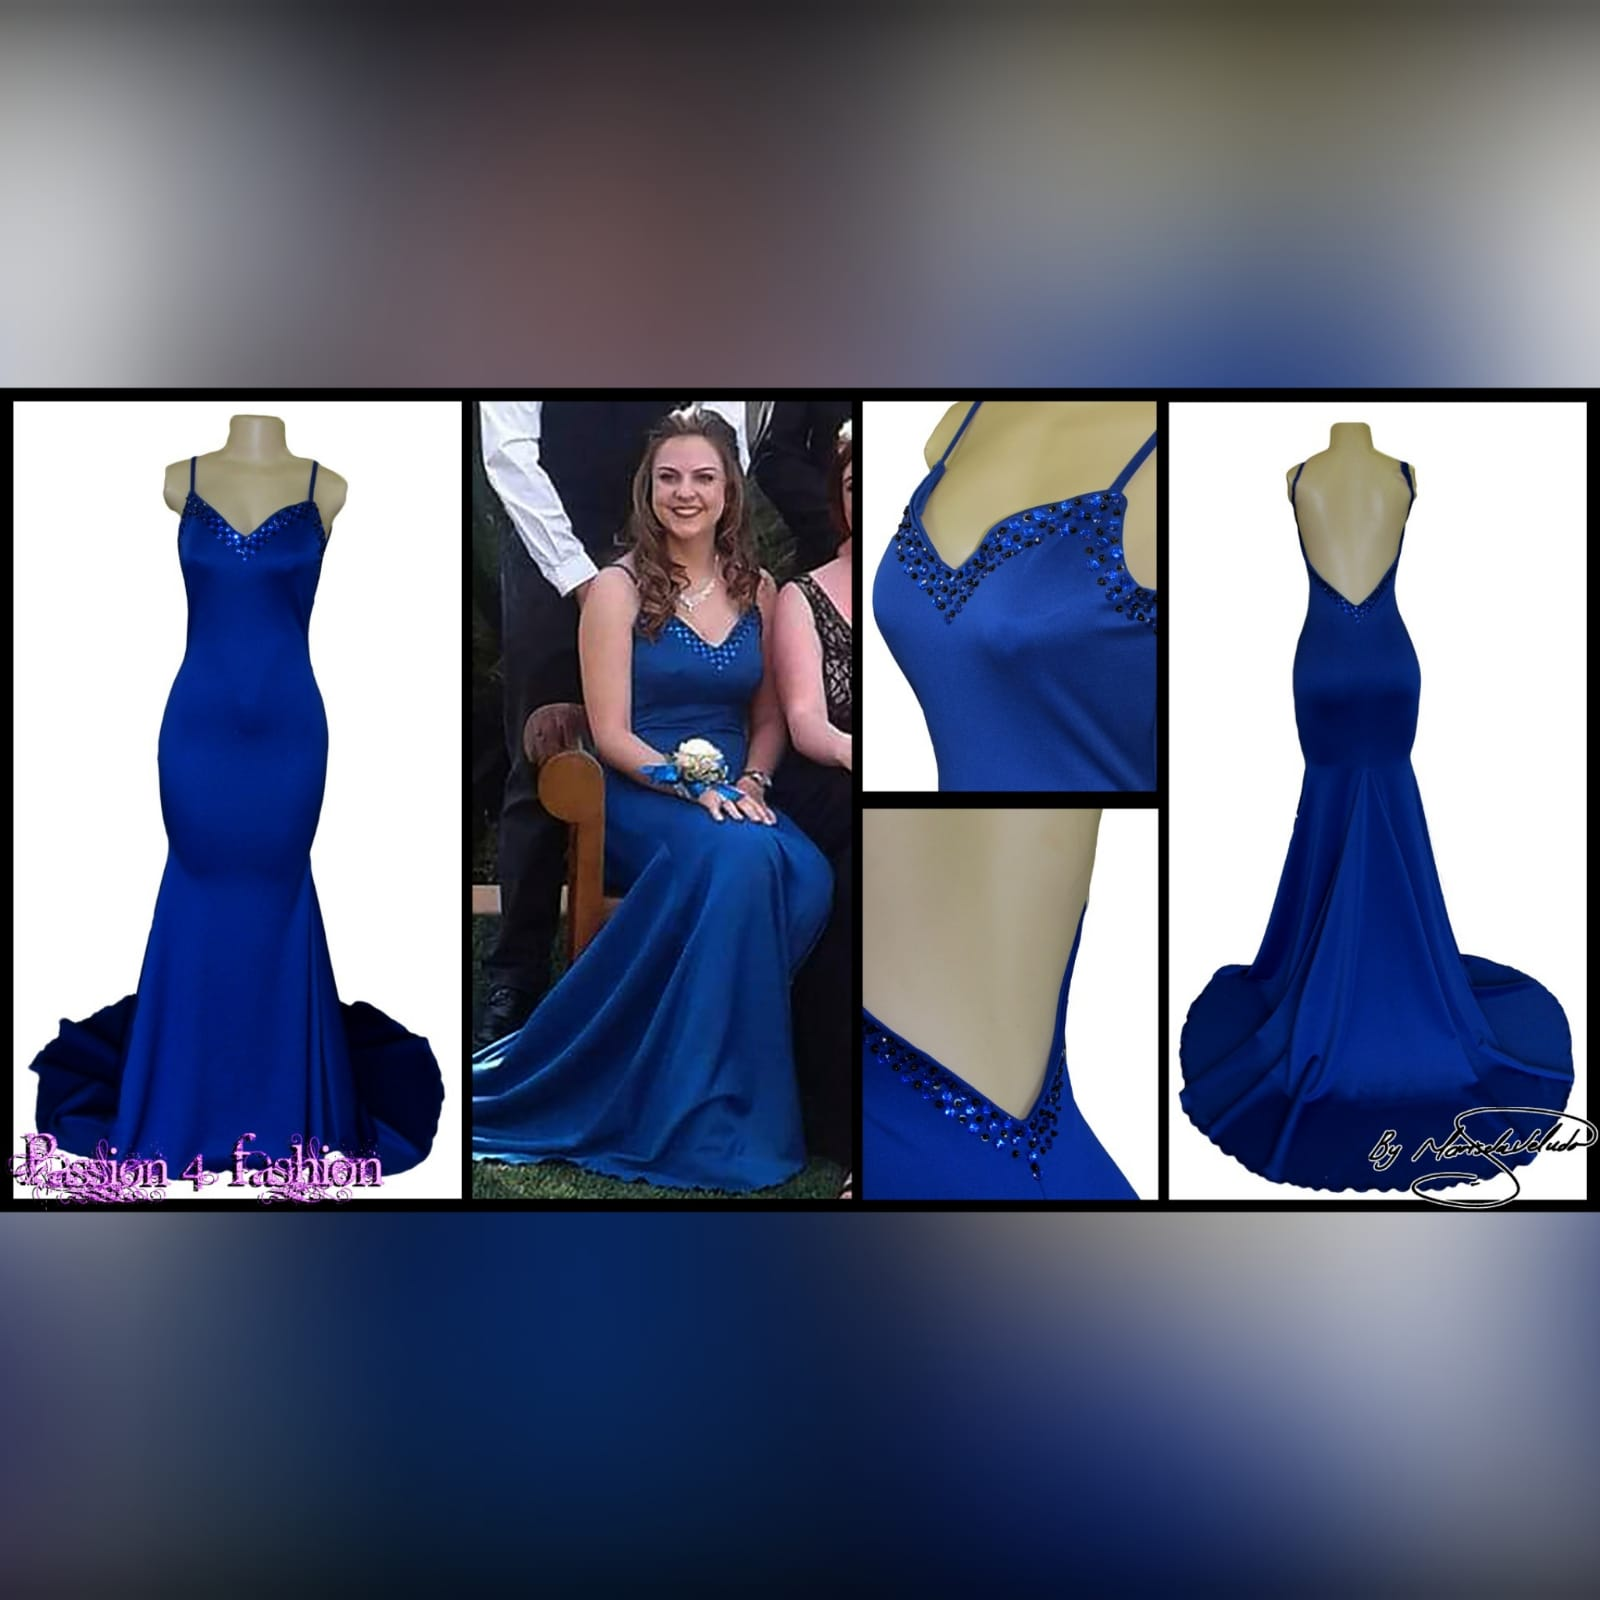 Royal blue soft mermaid beaded prom dress 5 royal blue soft mermaid beaded prom dress, with a v neckline, low v open back detailed with blue and black beads, thin shoulder straps and a long train.